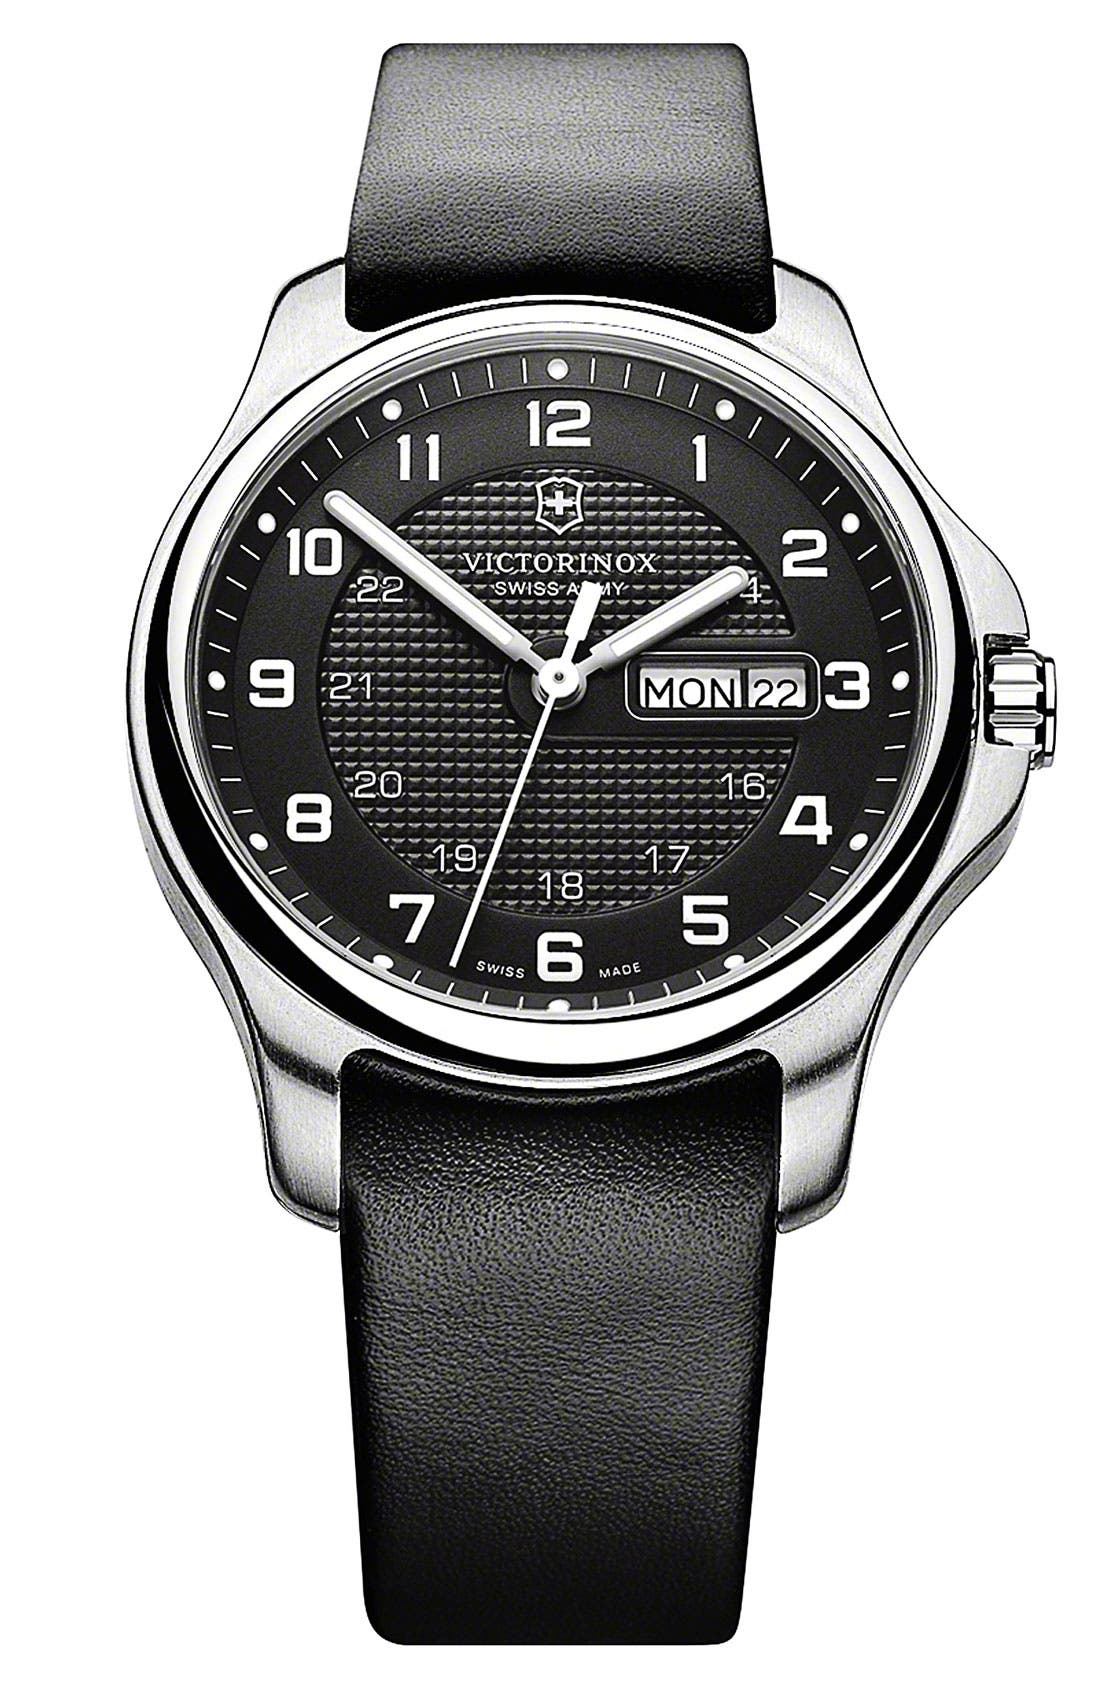 Main Image - Victorinox Swiss Army® 'Officer's' Leather Strap Watch with Knife